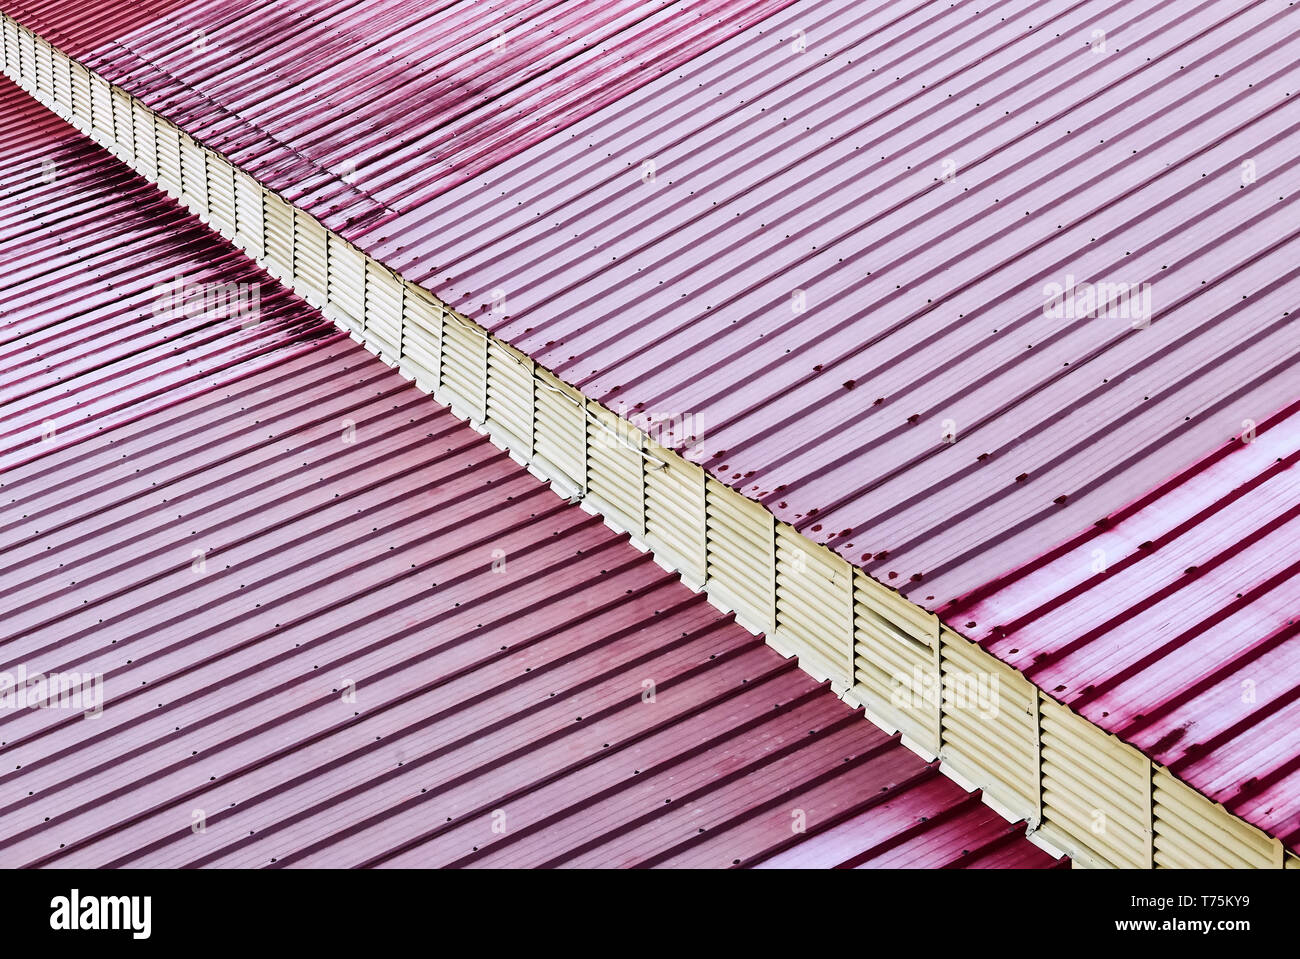 Detail view of a roof made of red colored metal sheets. A diagonal overhang gives a 3-dimensional impression. - Stock Image